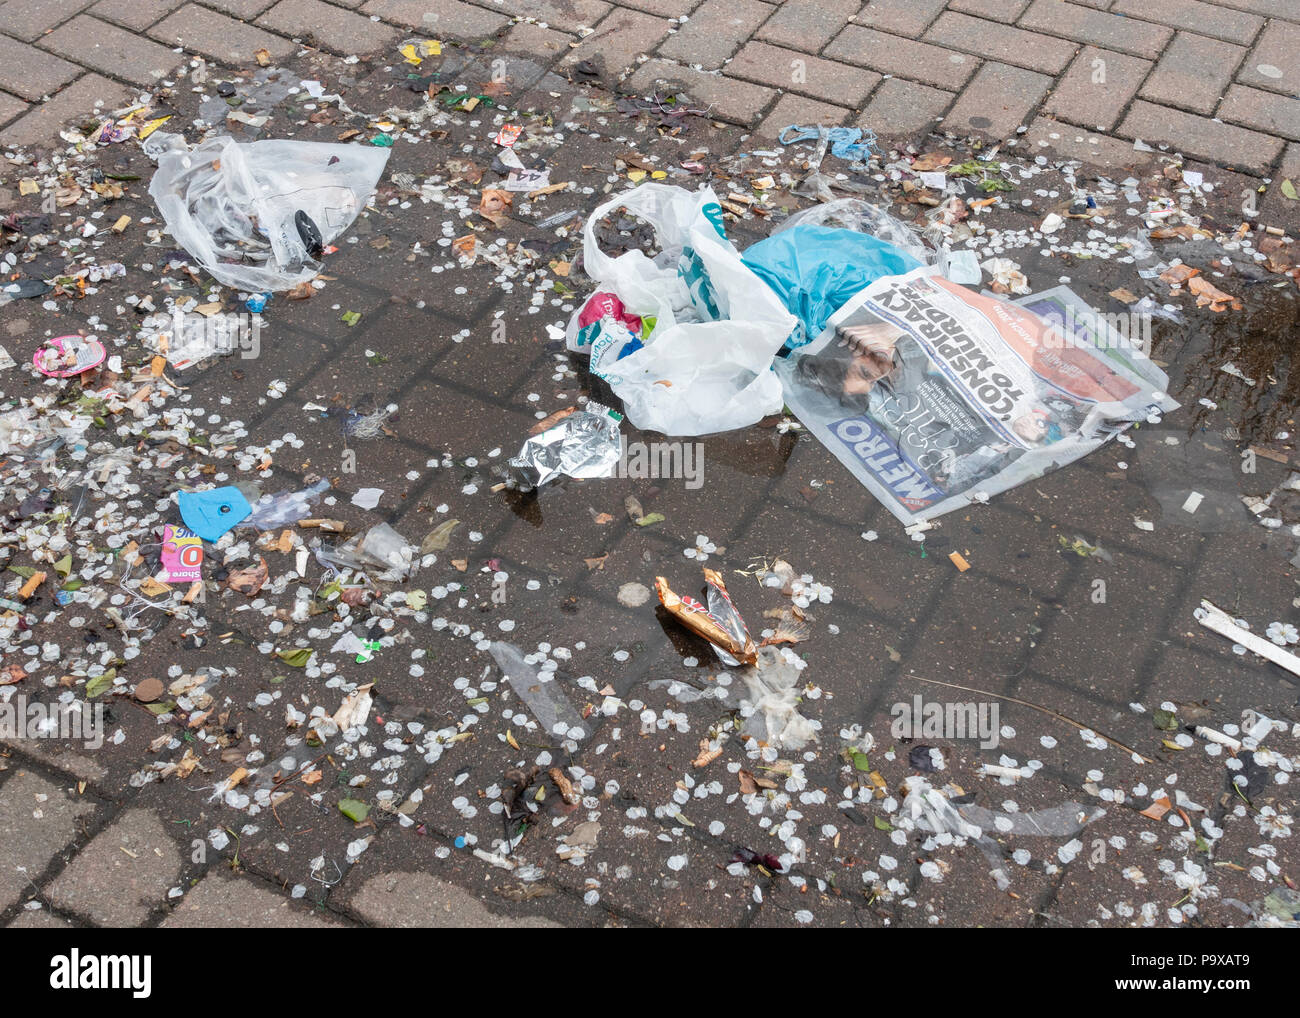 Litter in a puddle on city street in England. UK - Stock Image